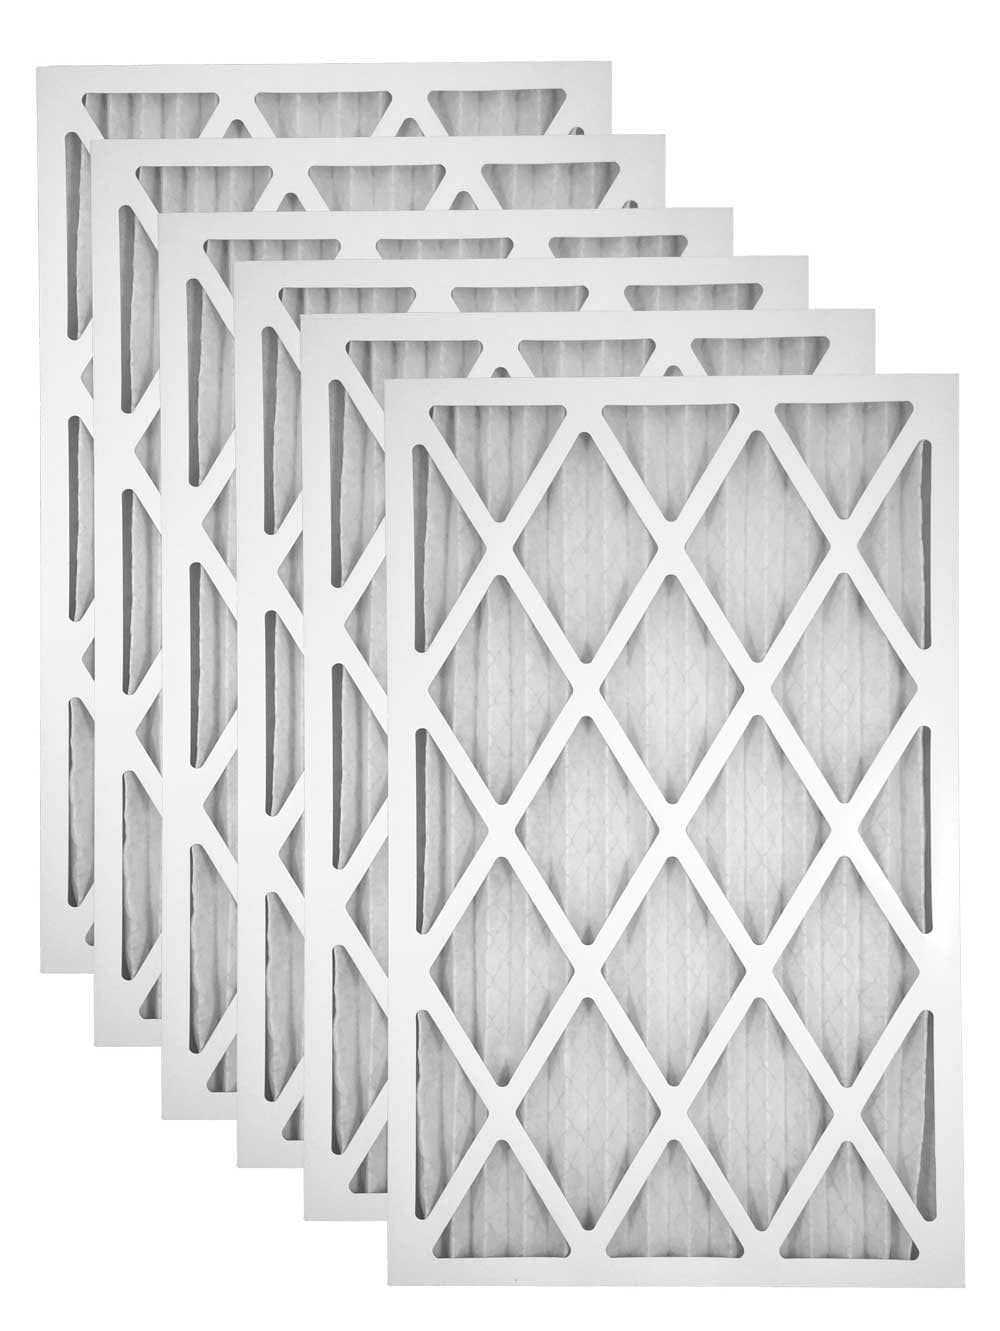 12x16x1 Merv 11 AC Furnace Filter - Case of 6